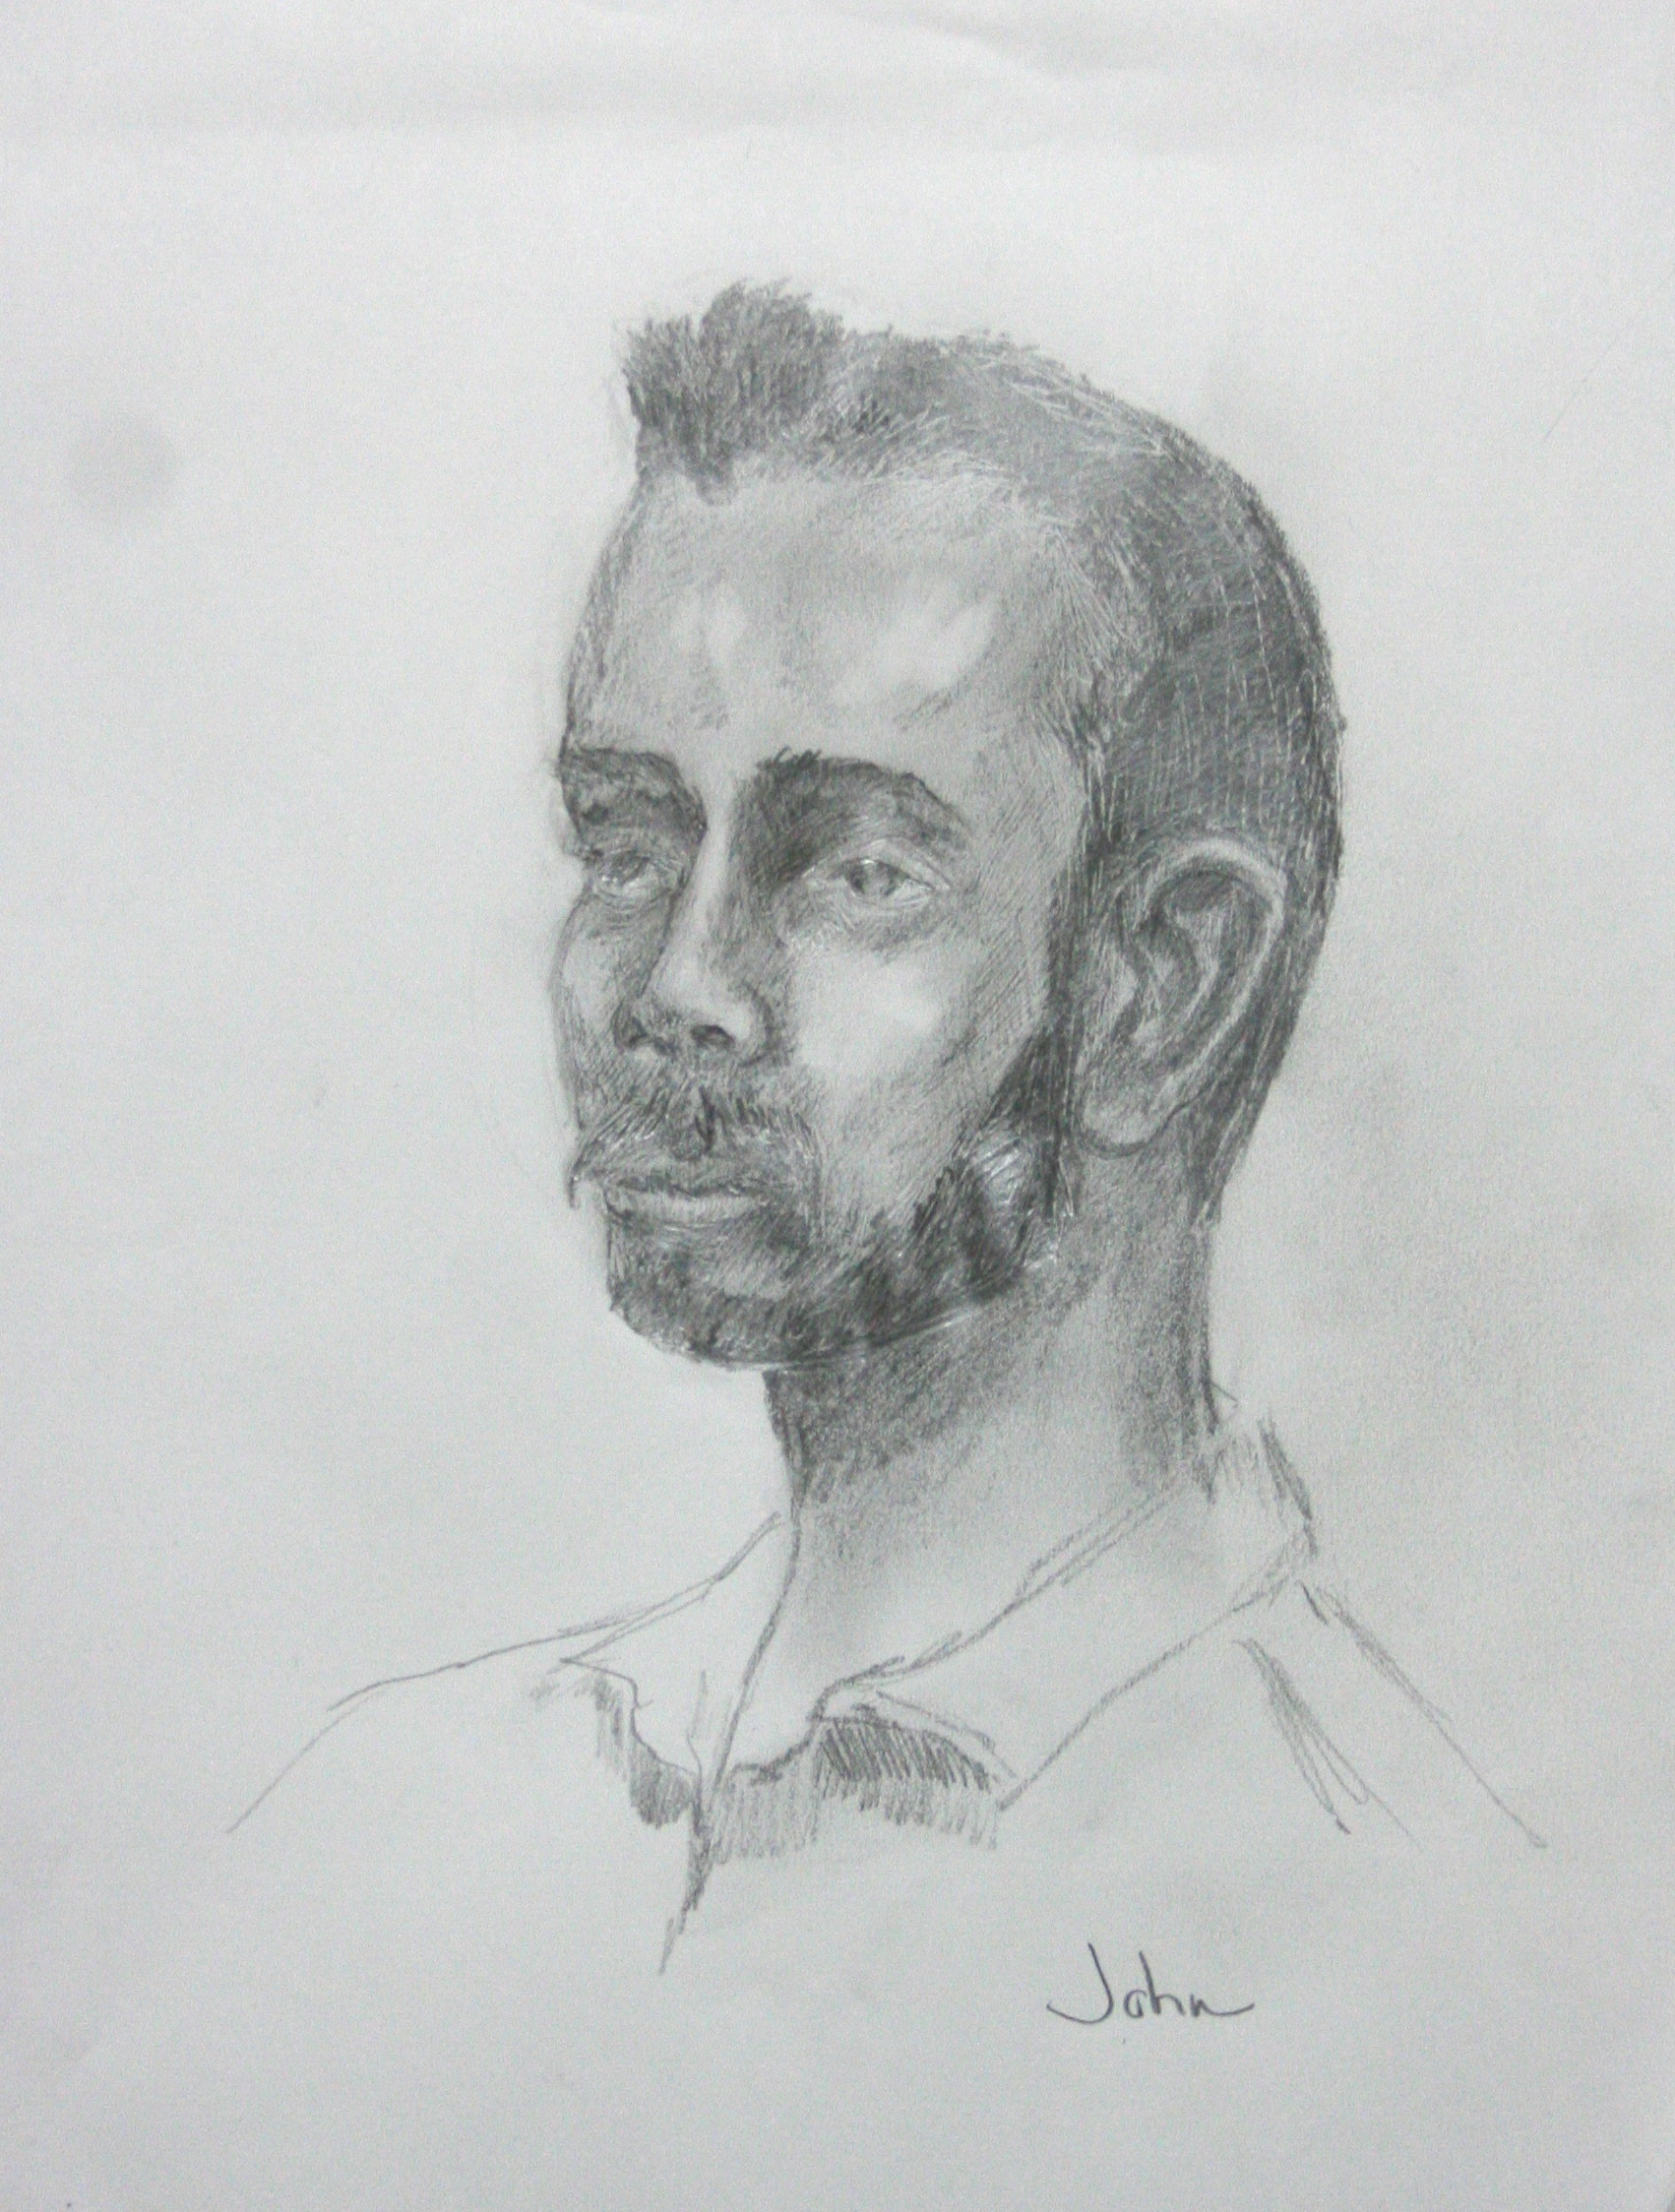 John R. Davis did this two hour drawing.